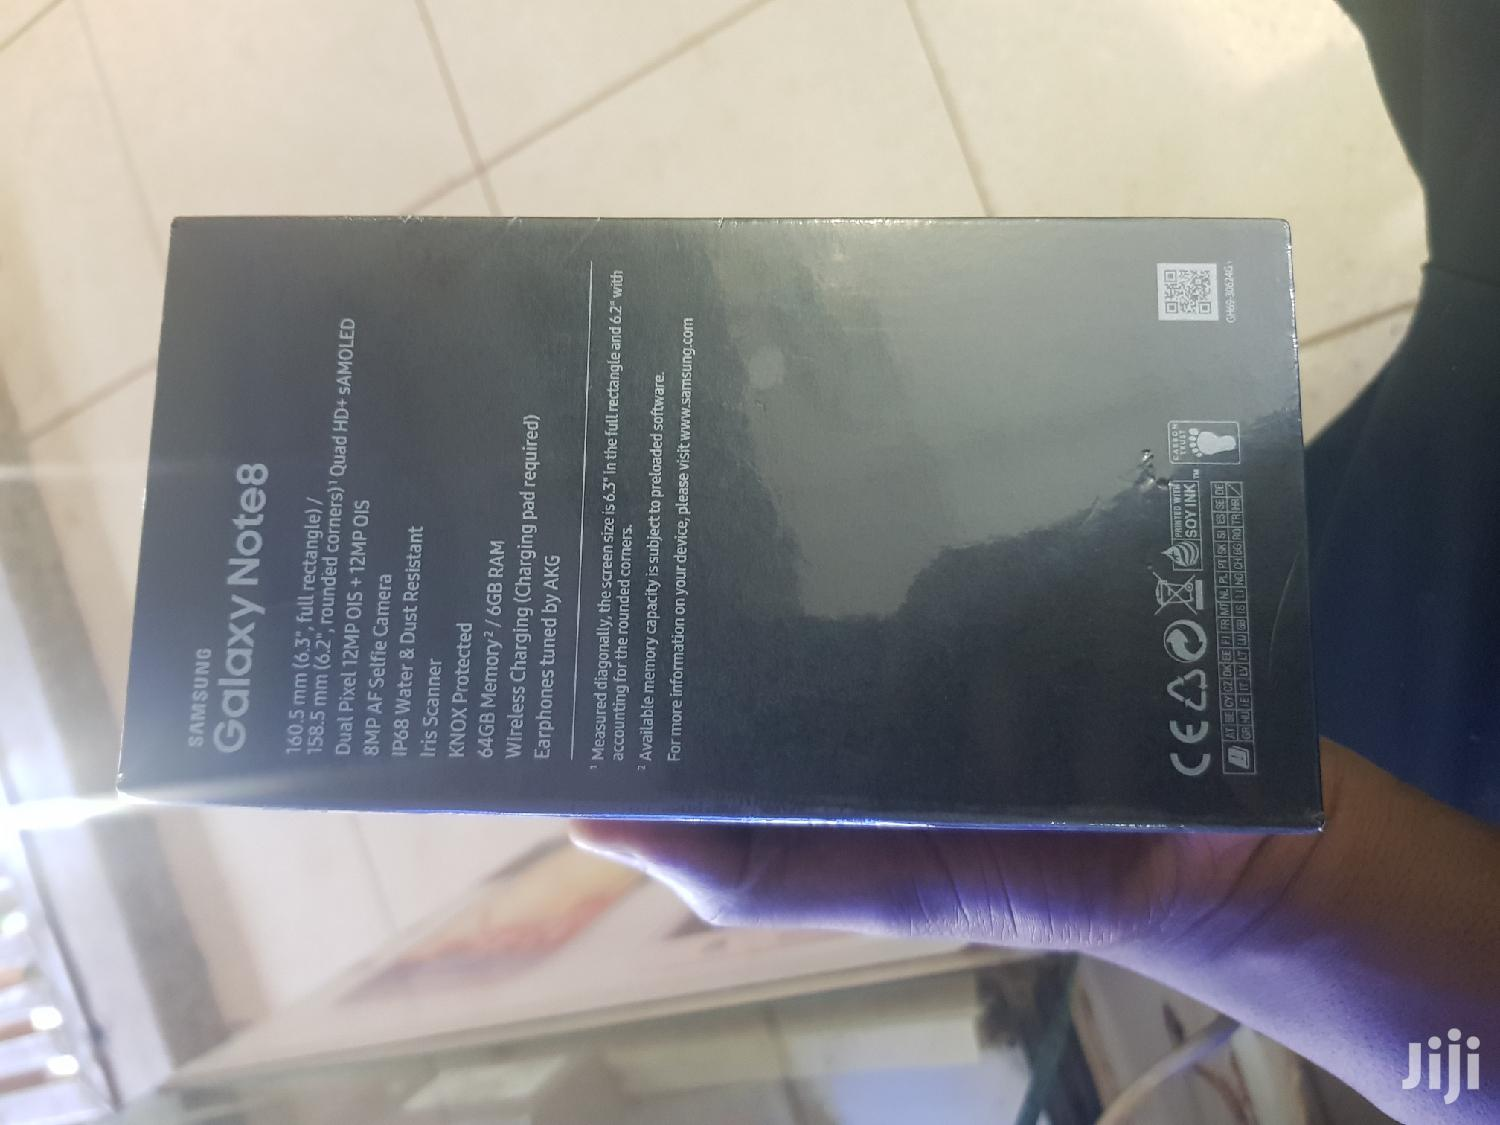 New Samsung Galaxy Note 8 64 GB | Mobile Phones for sale in Kampala, Central Region, Uganda